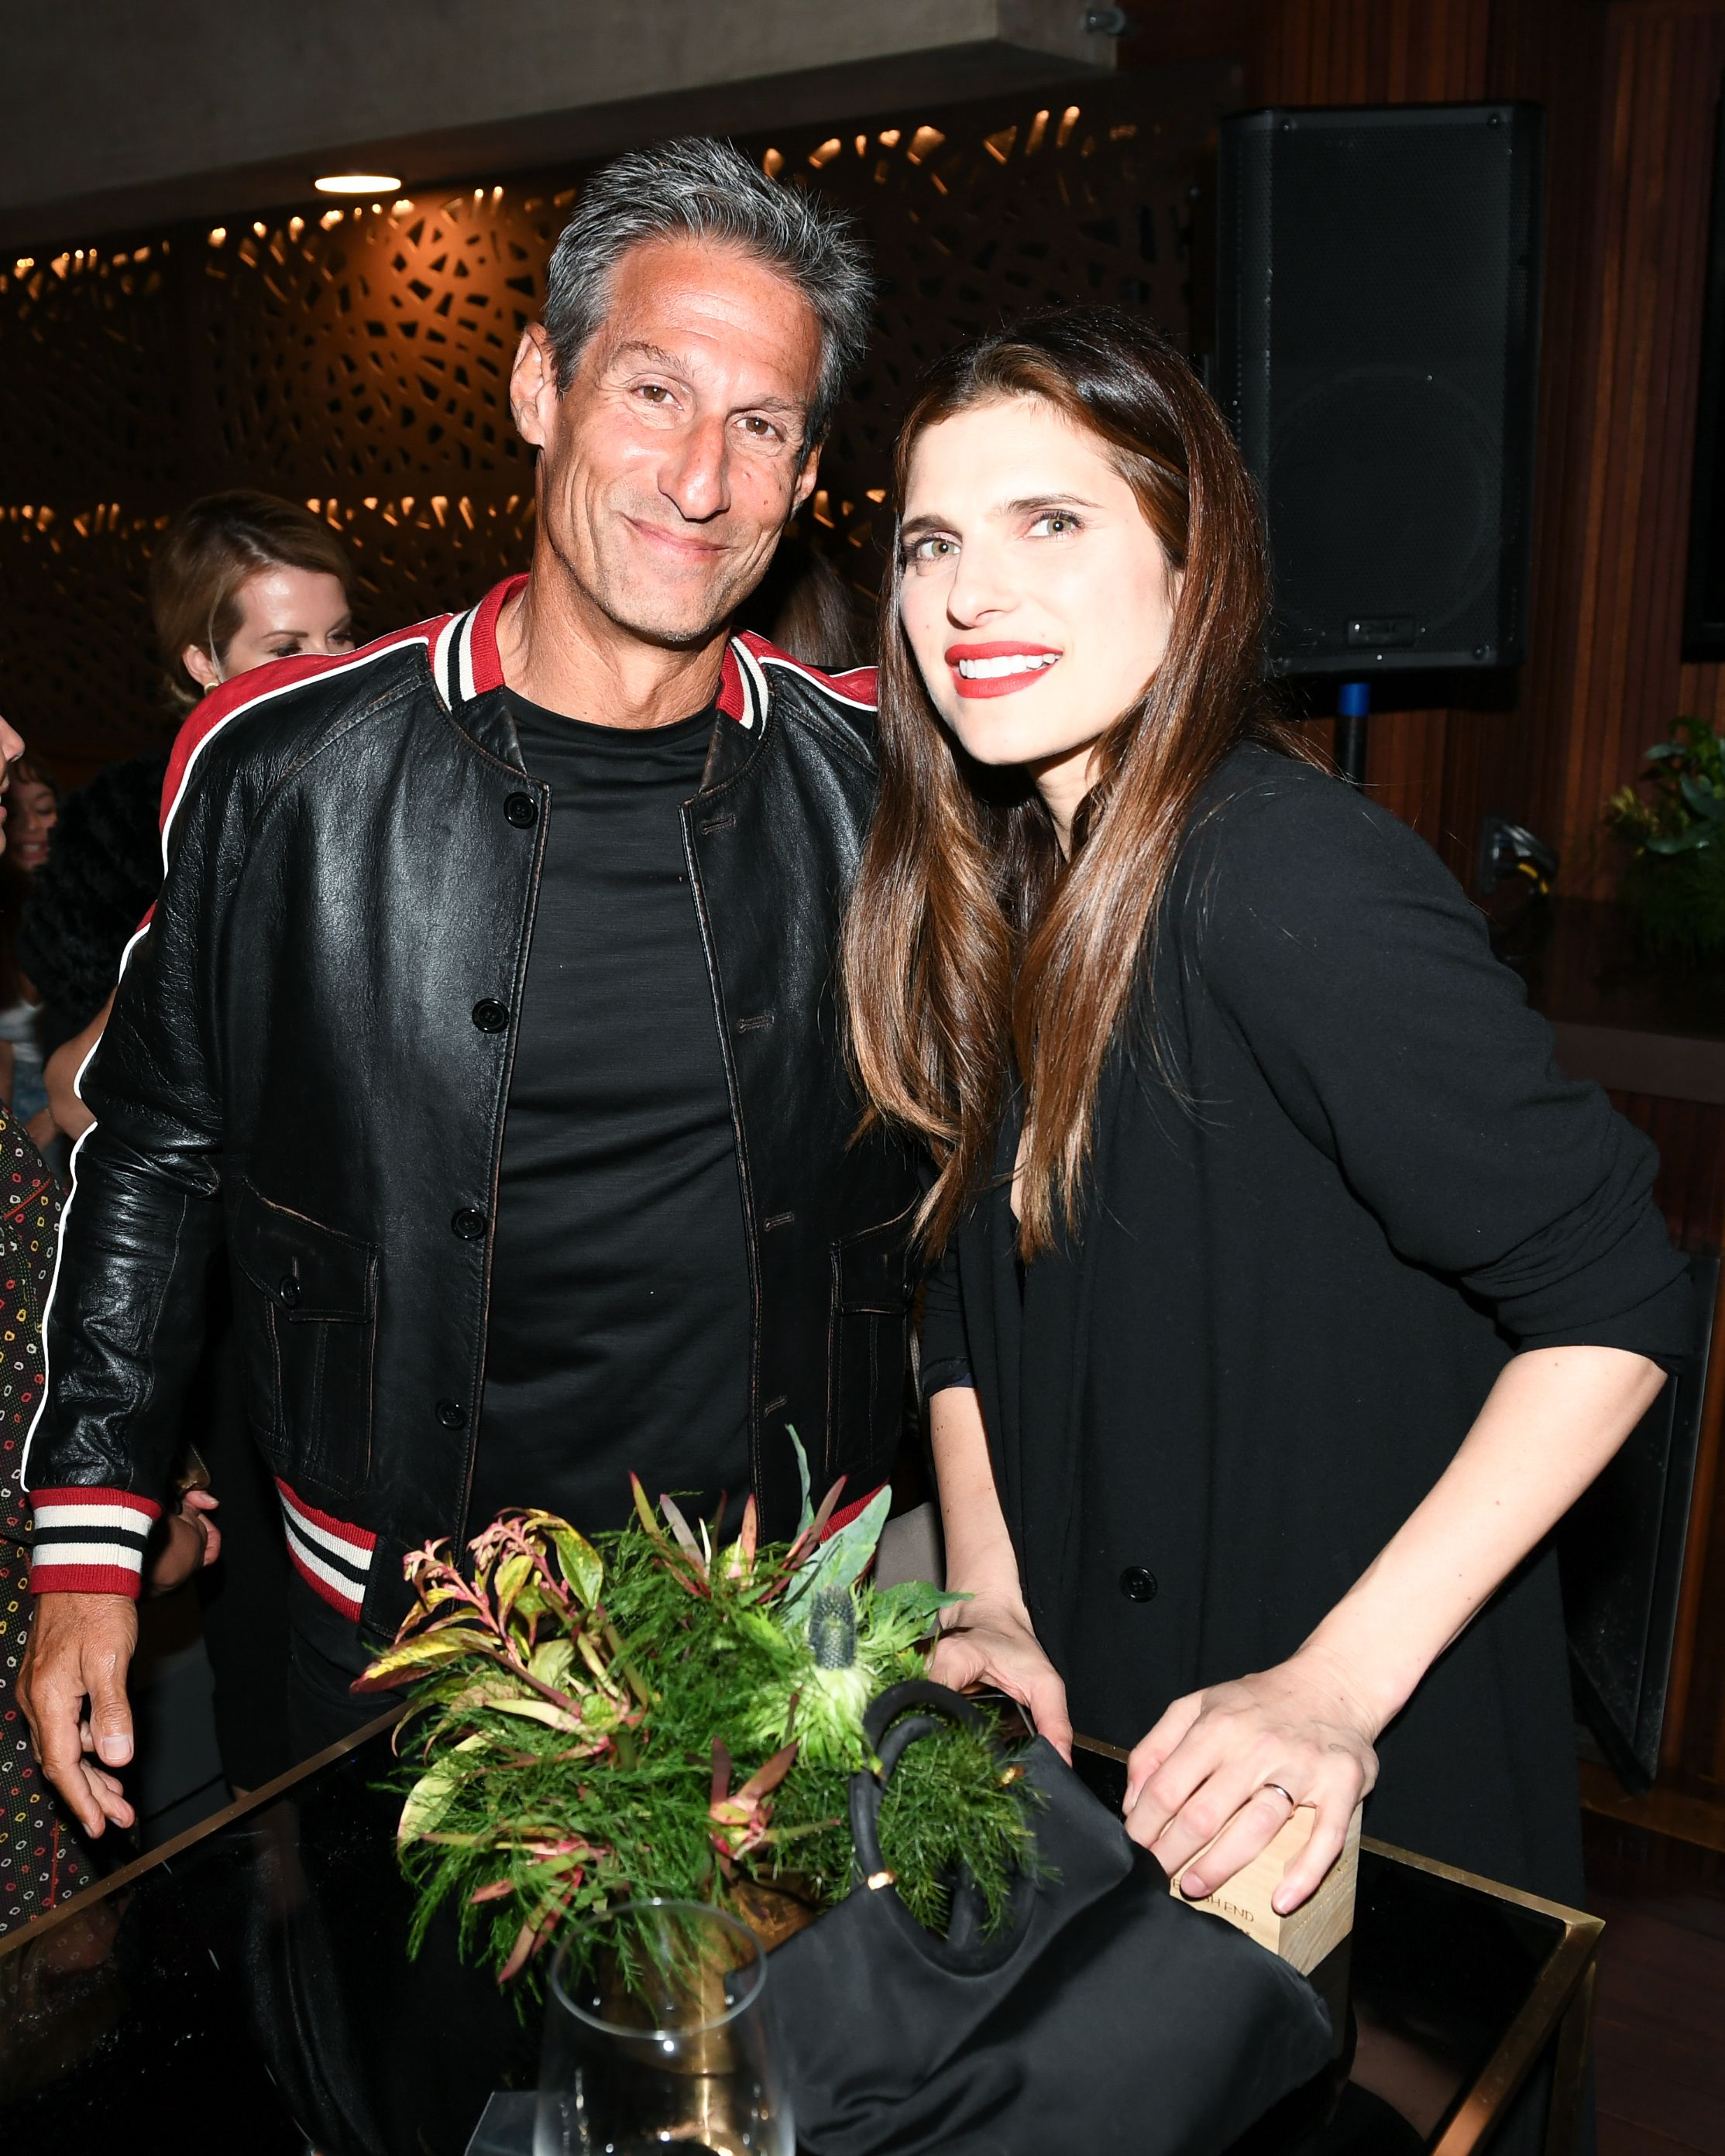 Richard Perry and Lake Bell Richard Perry and Lake Bell celebrate the launch of Barneys New York's The High End hosted by Beboe, along with Matthew Mazzucca, Scott Campbell and Clement Kwan, on March 20.